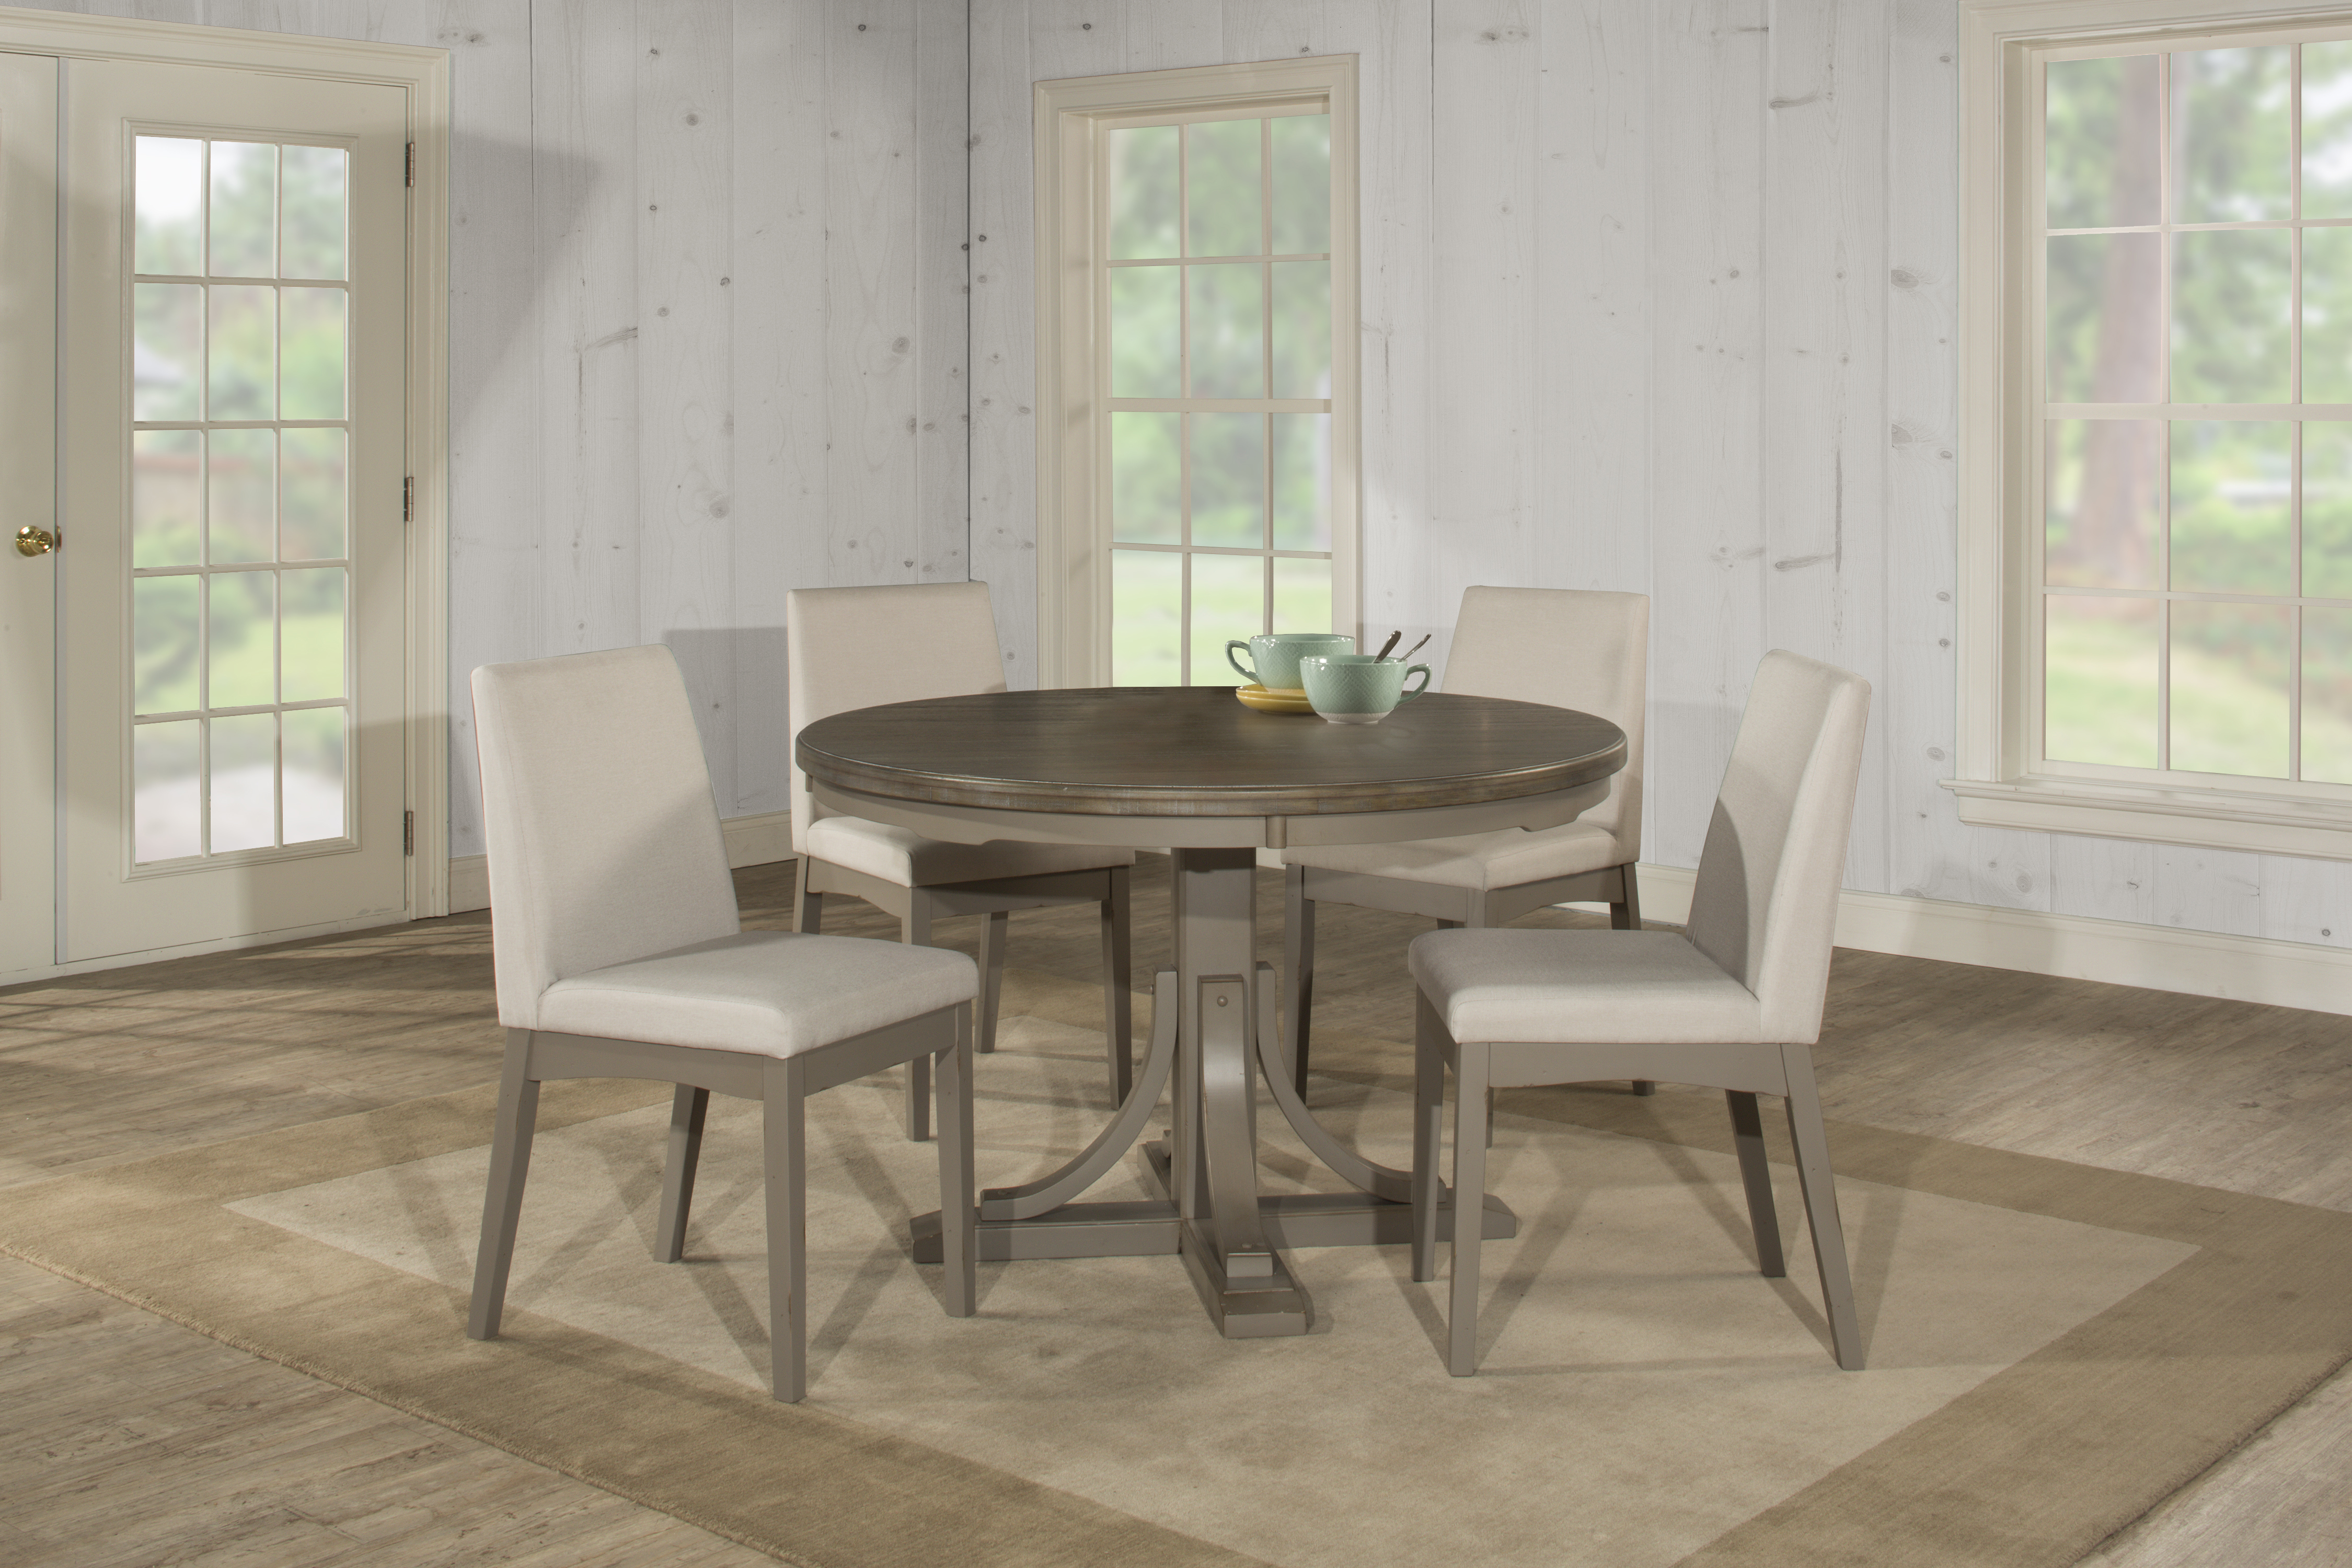 Clarion 5 Piece Round Dining Set With Upholstered Chairs   Distressed Gray